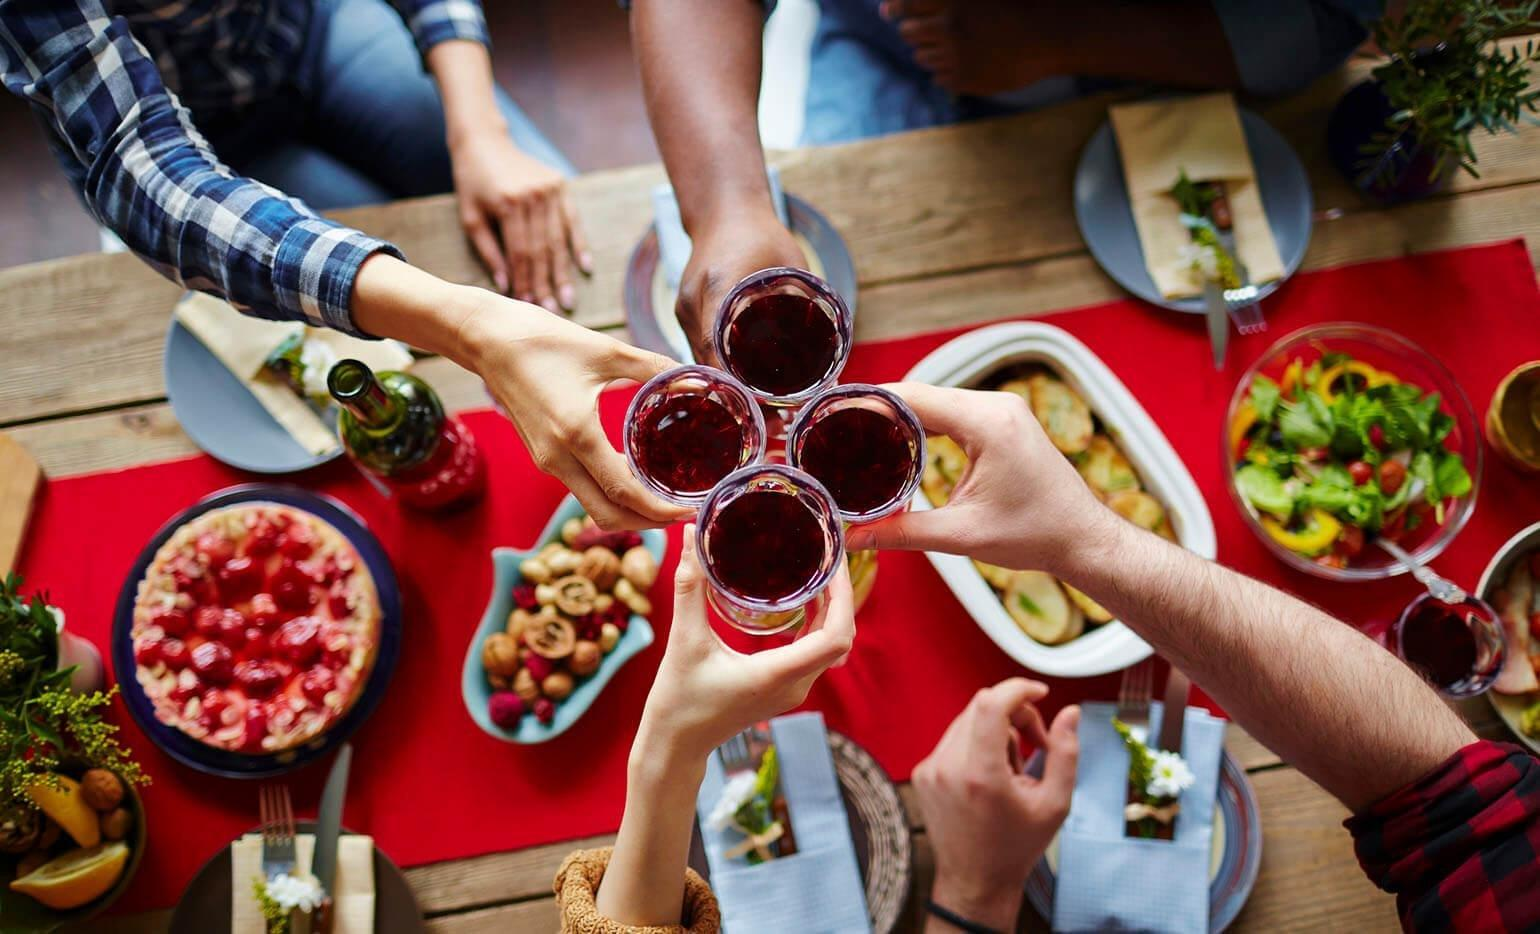 10 Tips To Help Manage Diabetes During The Holidays